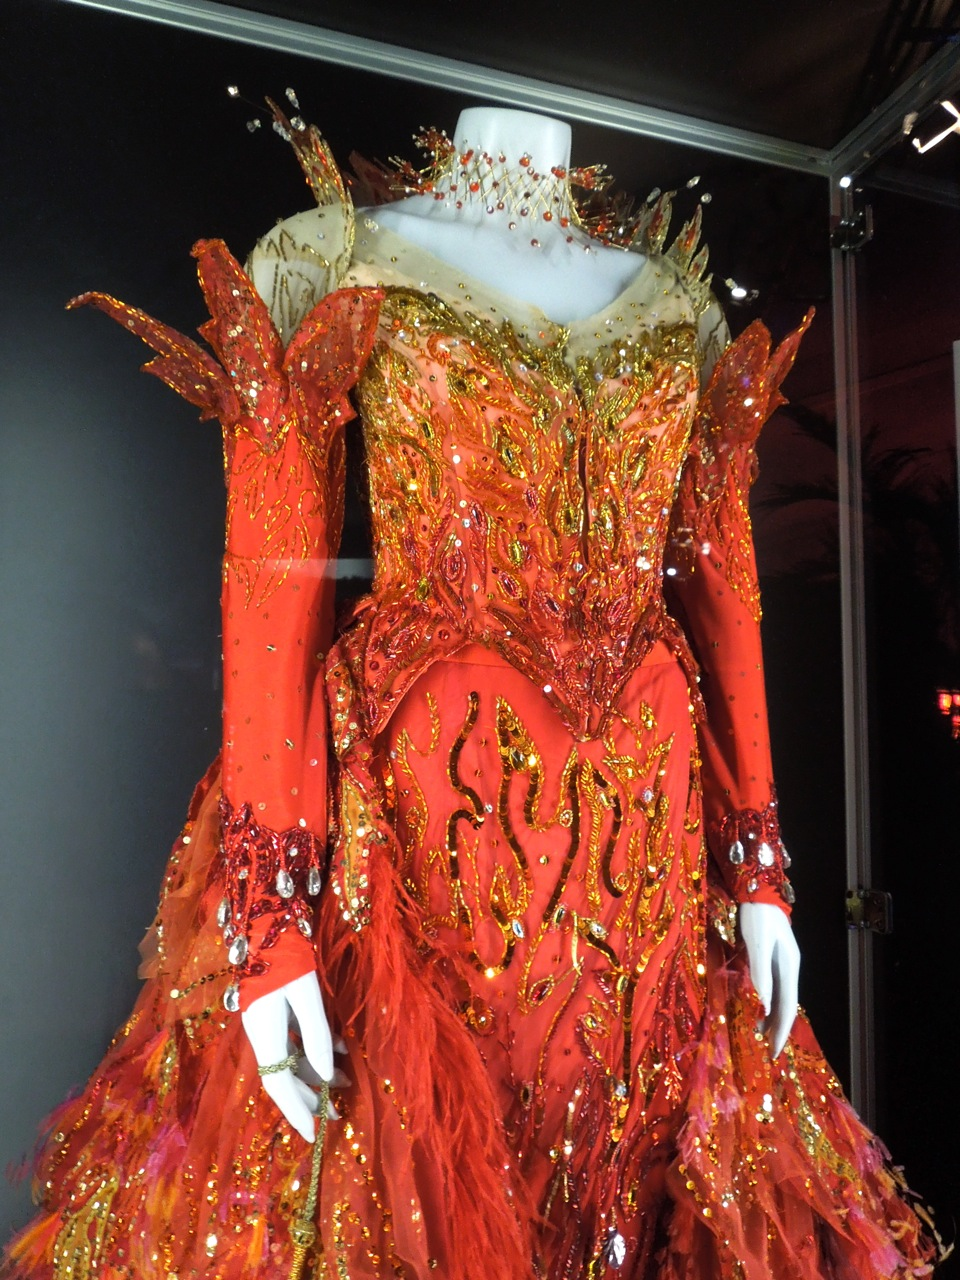 Cruella de Vil's 102 Dalmatians flame dress worn by Glenn ...